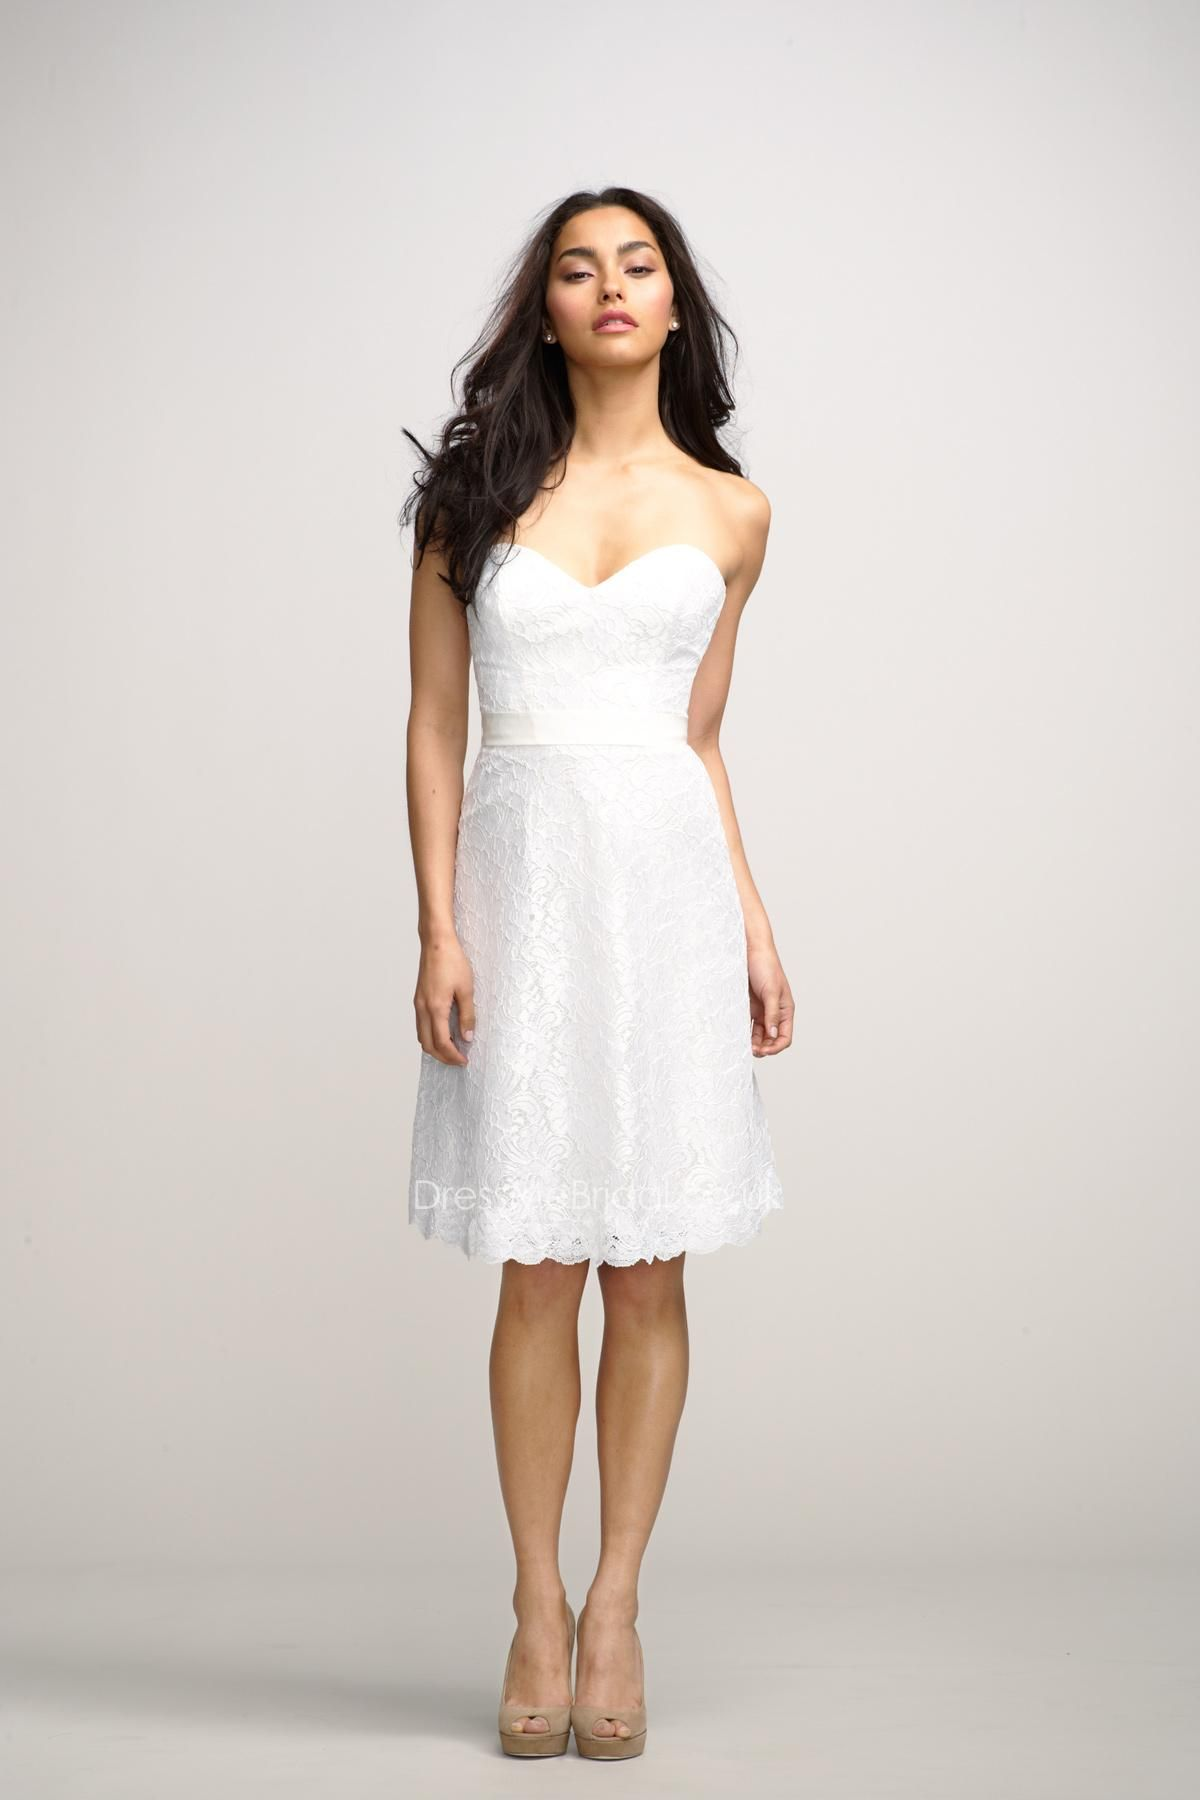 Sweetheart strapless wedding dress  strapless sweetheart little white lace bridesmaid dress with